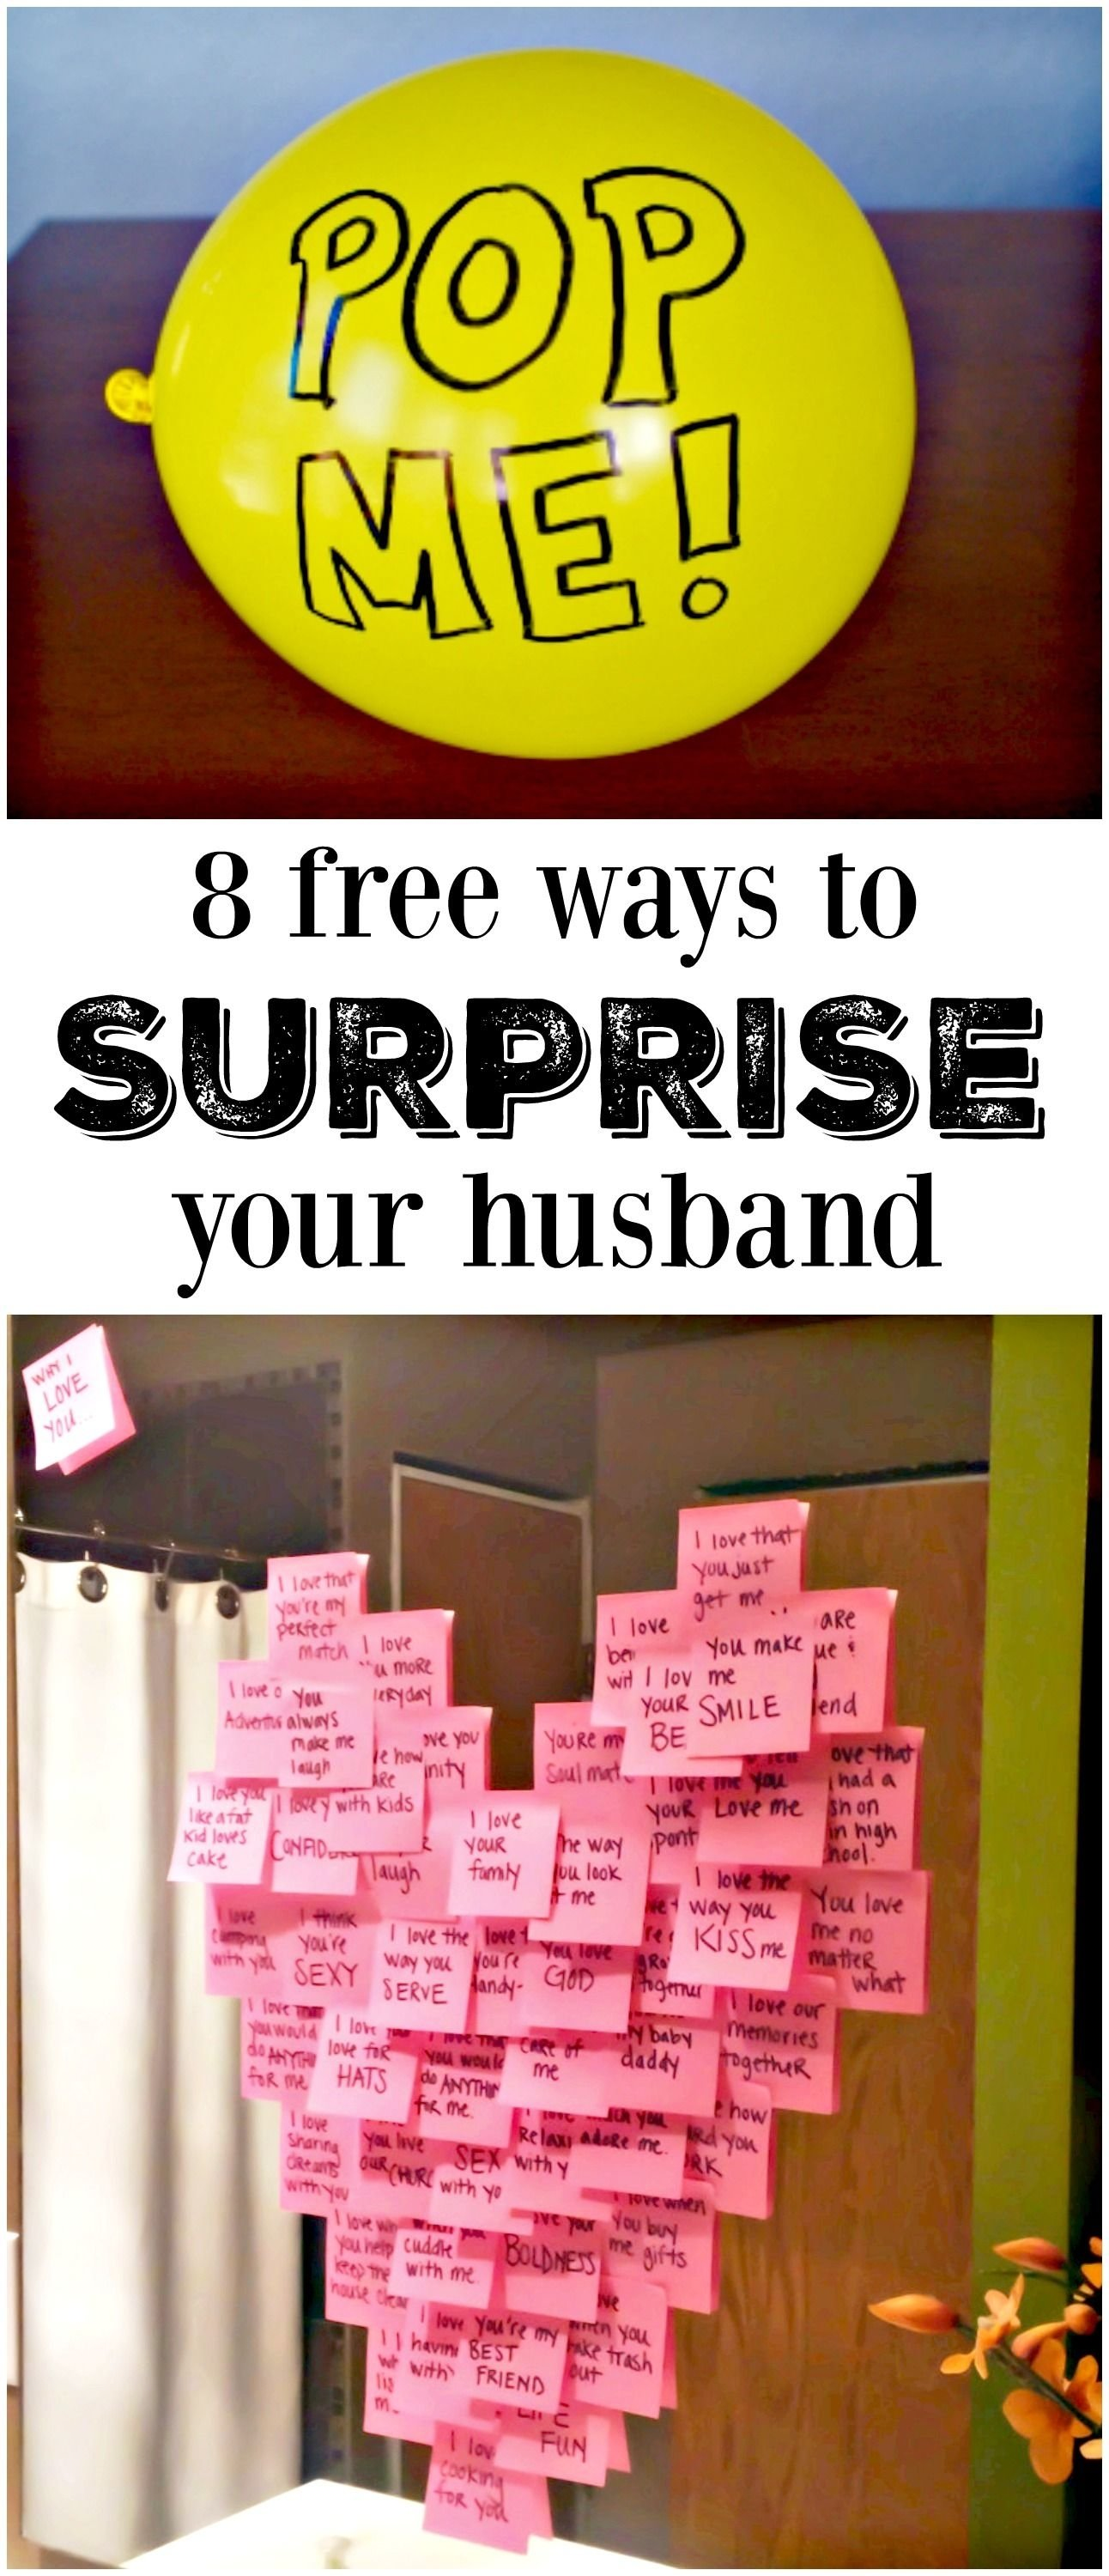 8 meaningful ways to make his day | free, gift and relationships